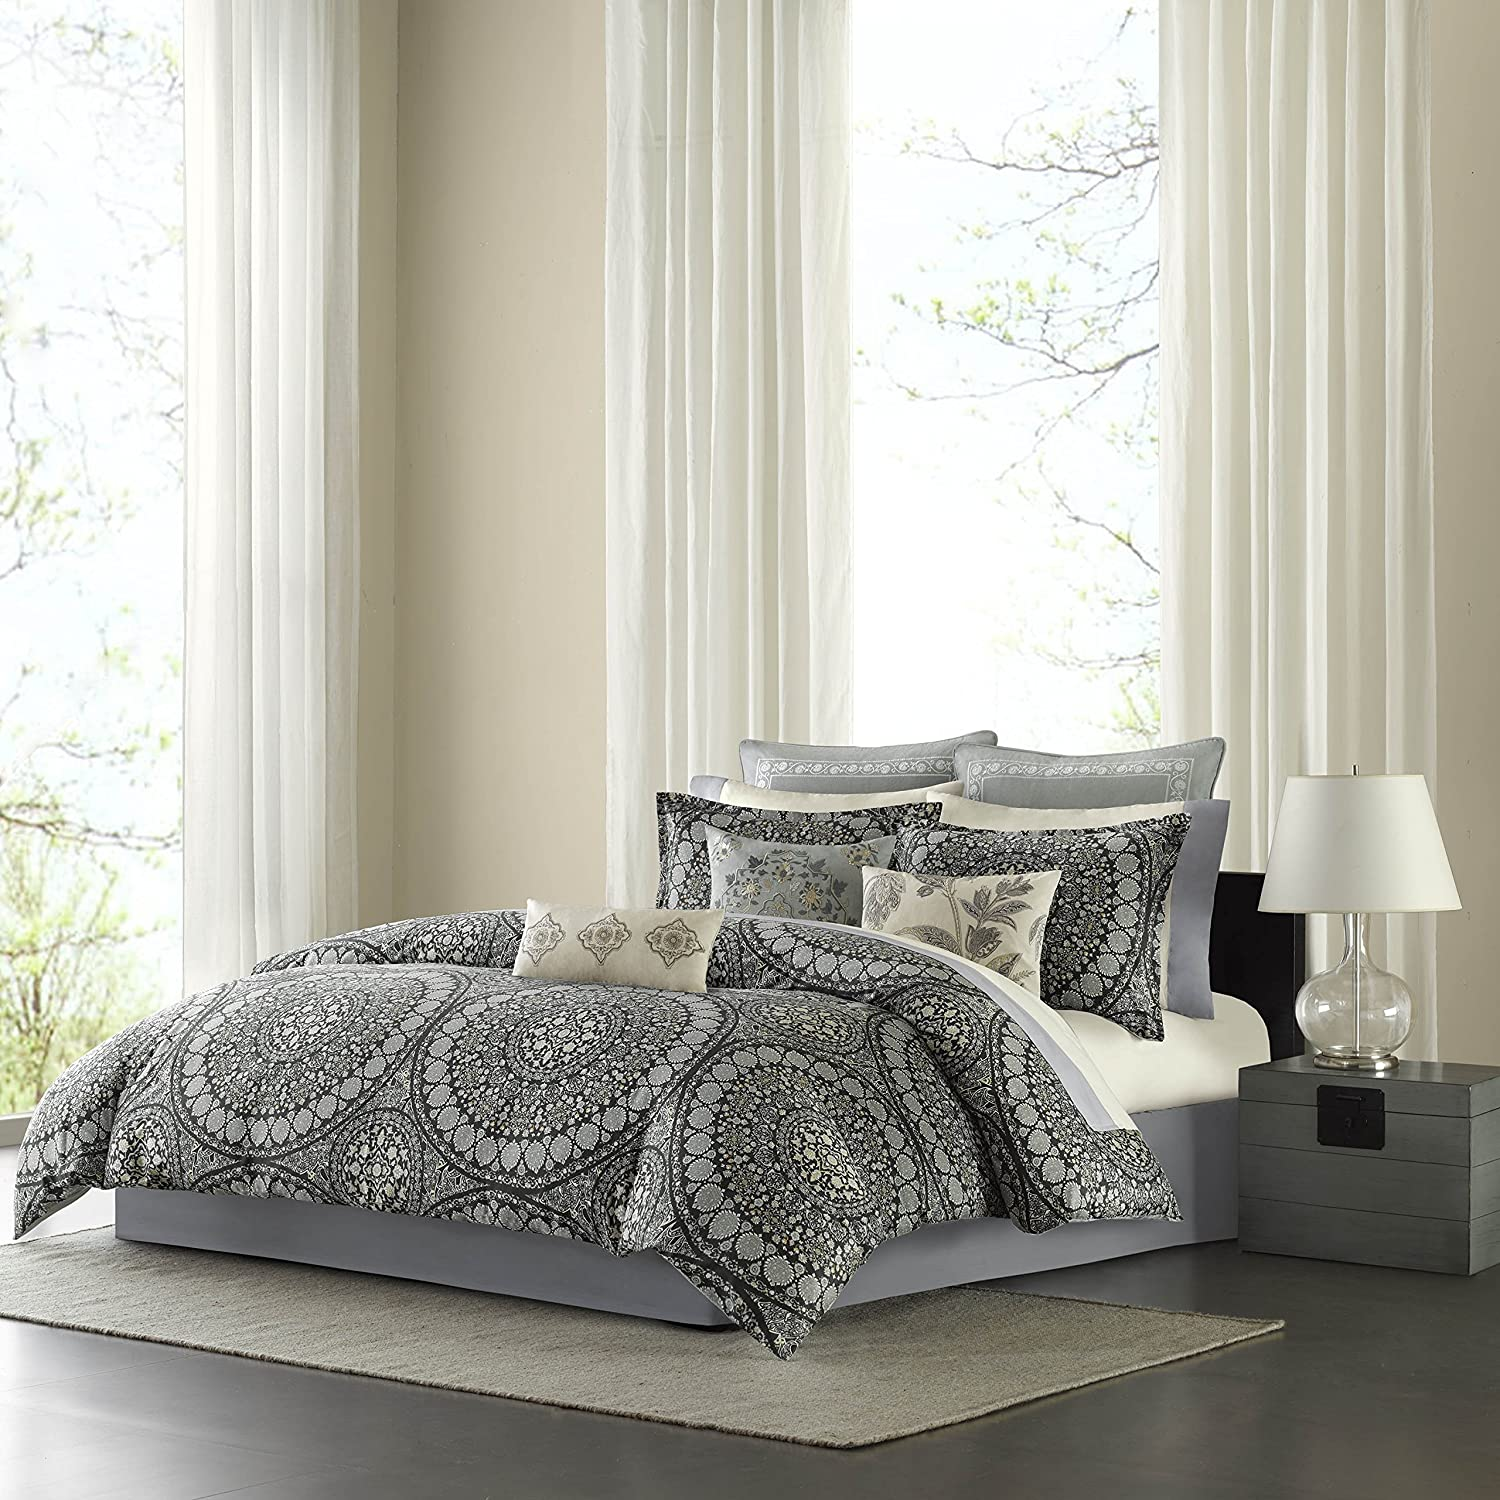 bath echo and bedding ishana xggafni curated us bed i set kravet csx products